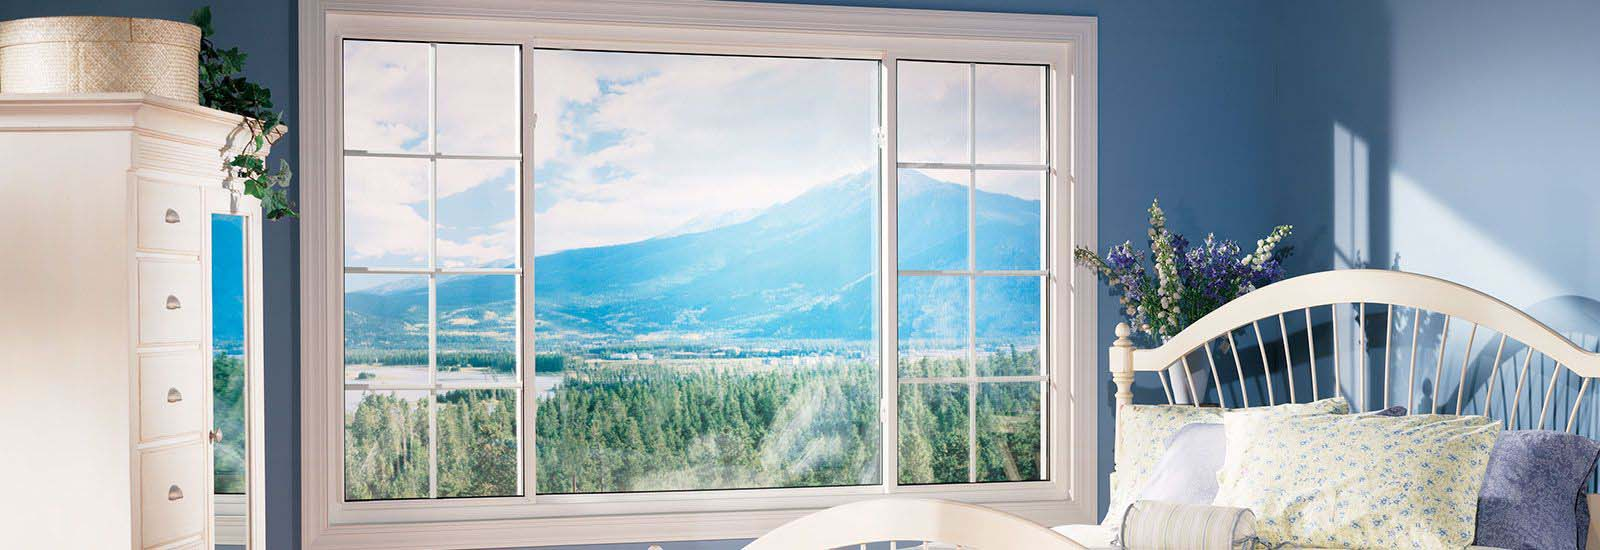 White Vinyl Sliding Windows